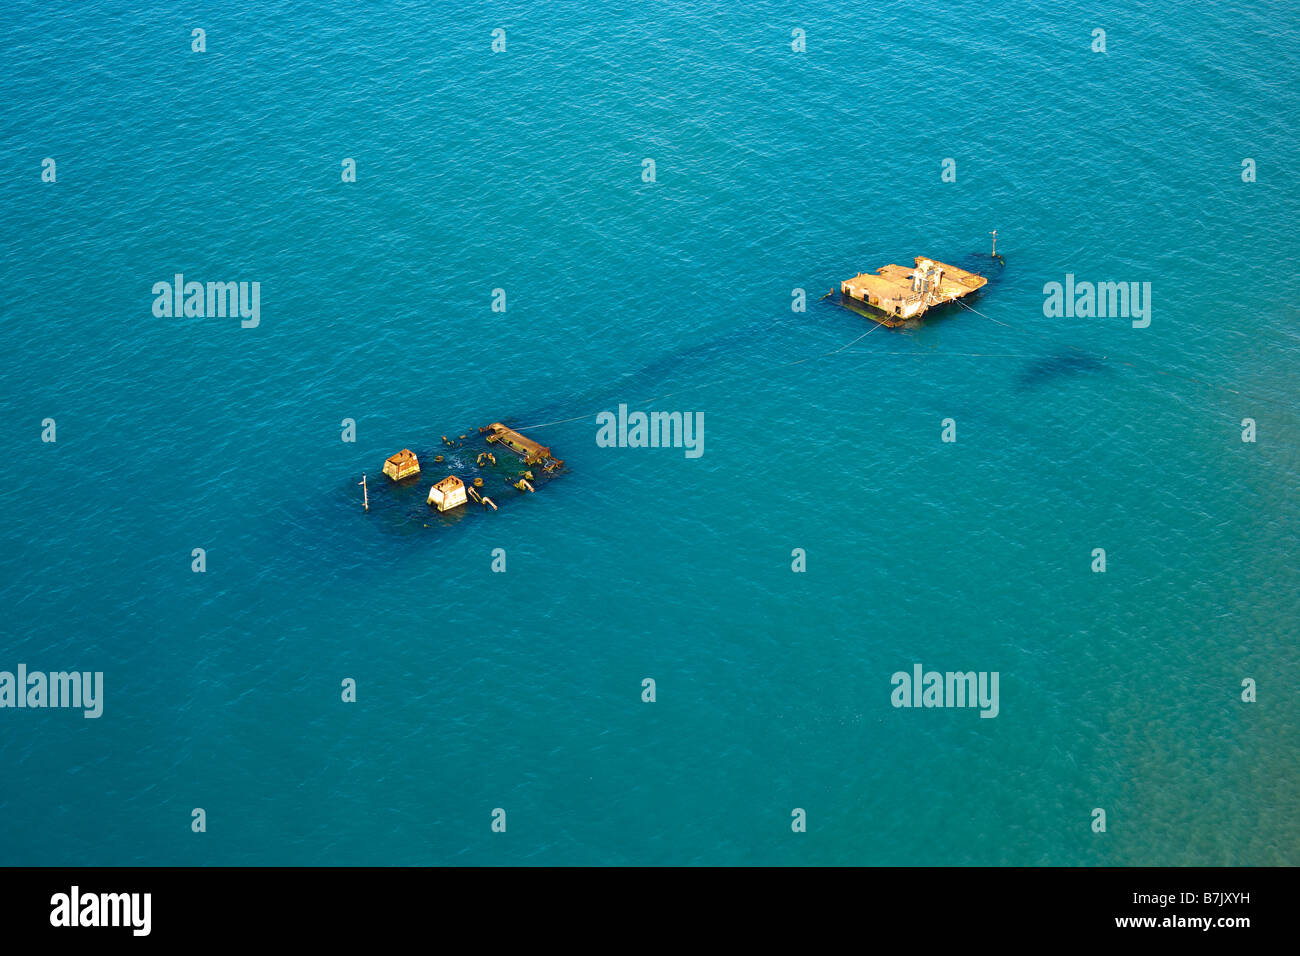 Aerial view of a sunken ship on Black Sea coast of Istanbul Turkey - Stock Image